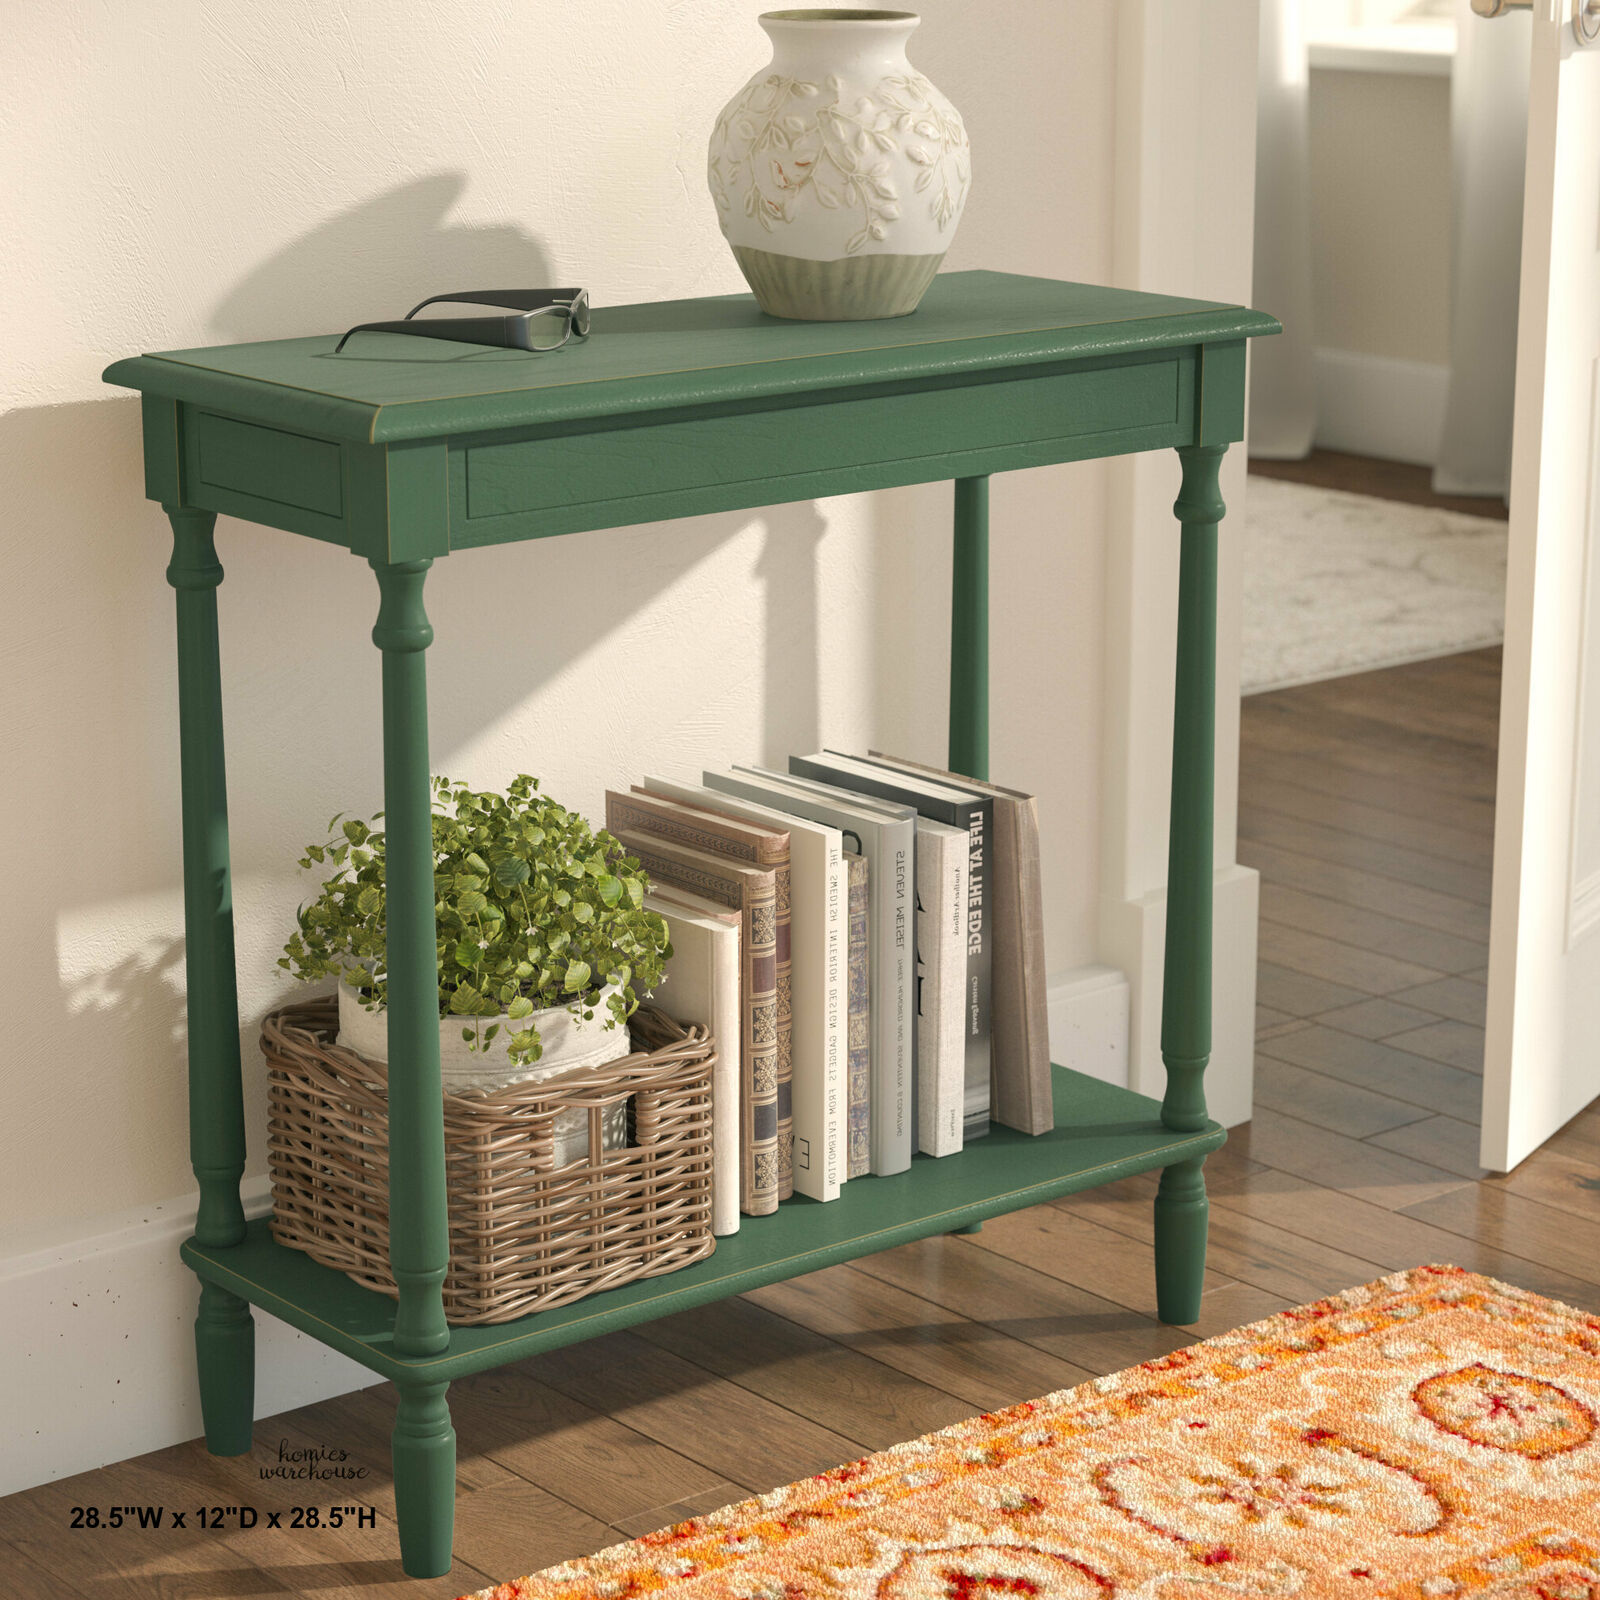 Picture of: Narrow Console Table Rustic Small Entry Way Hallway Table Rustic Black Stain For Sale Online Ebay